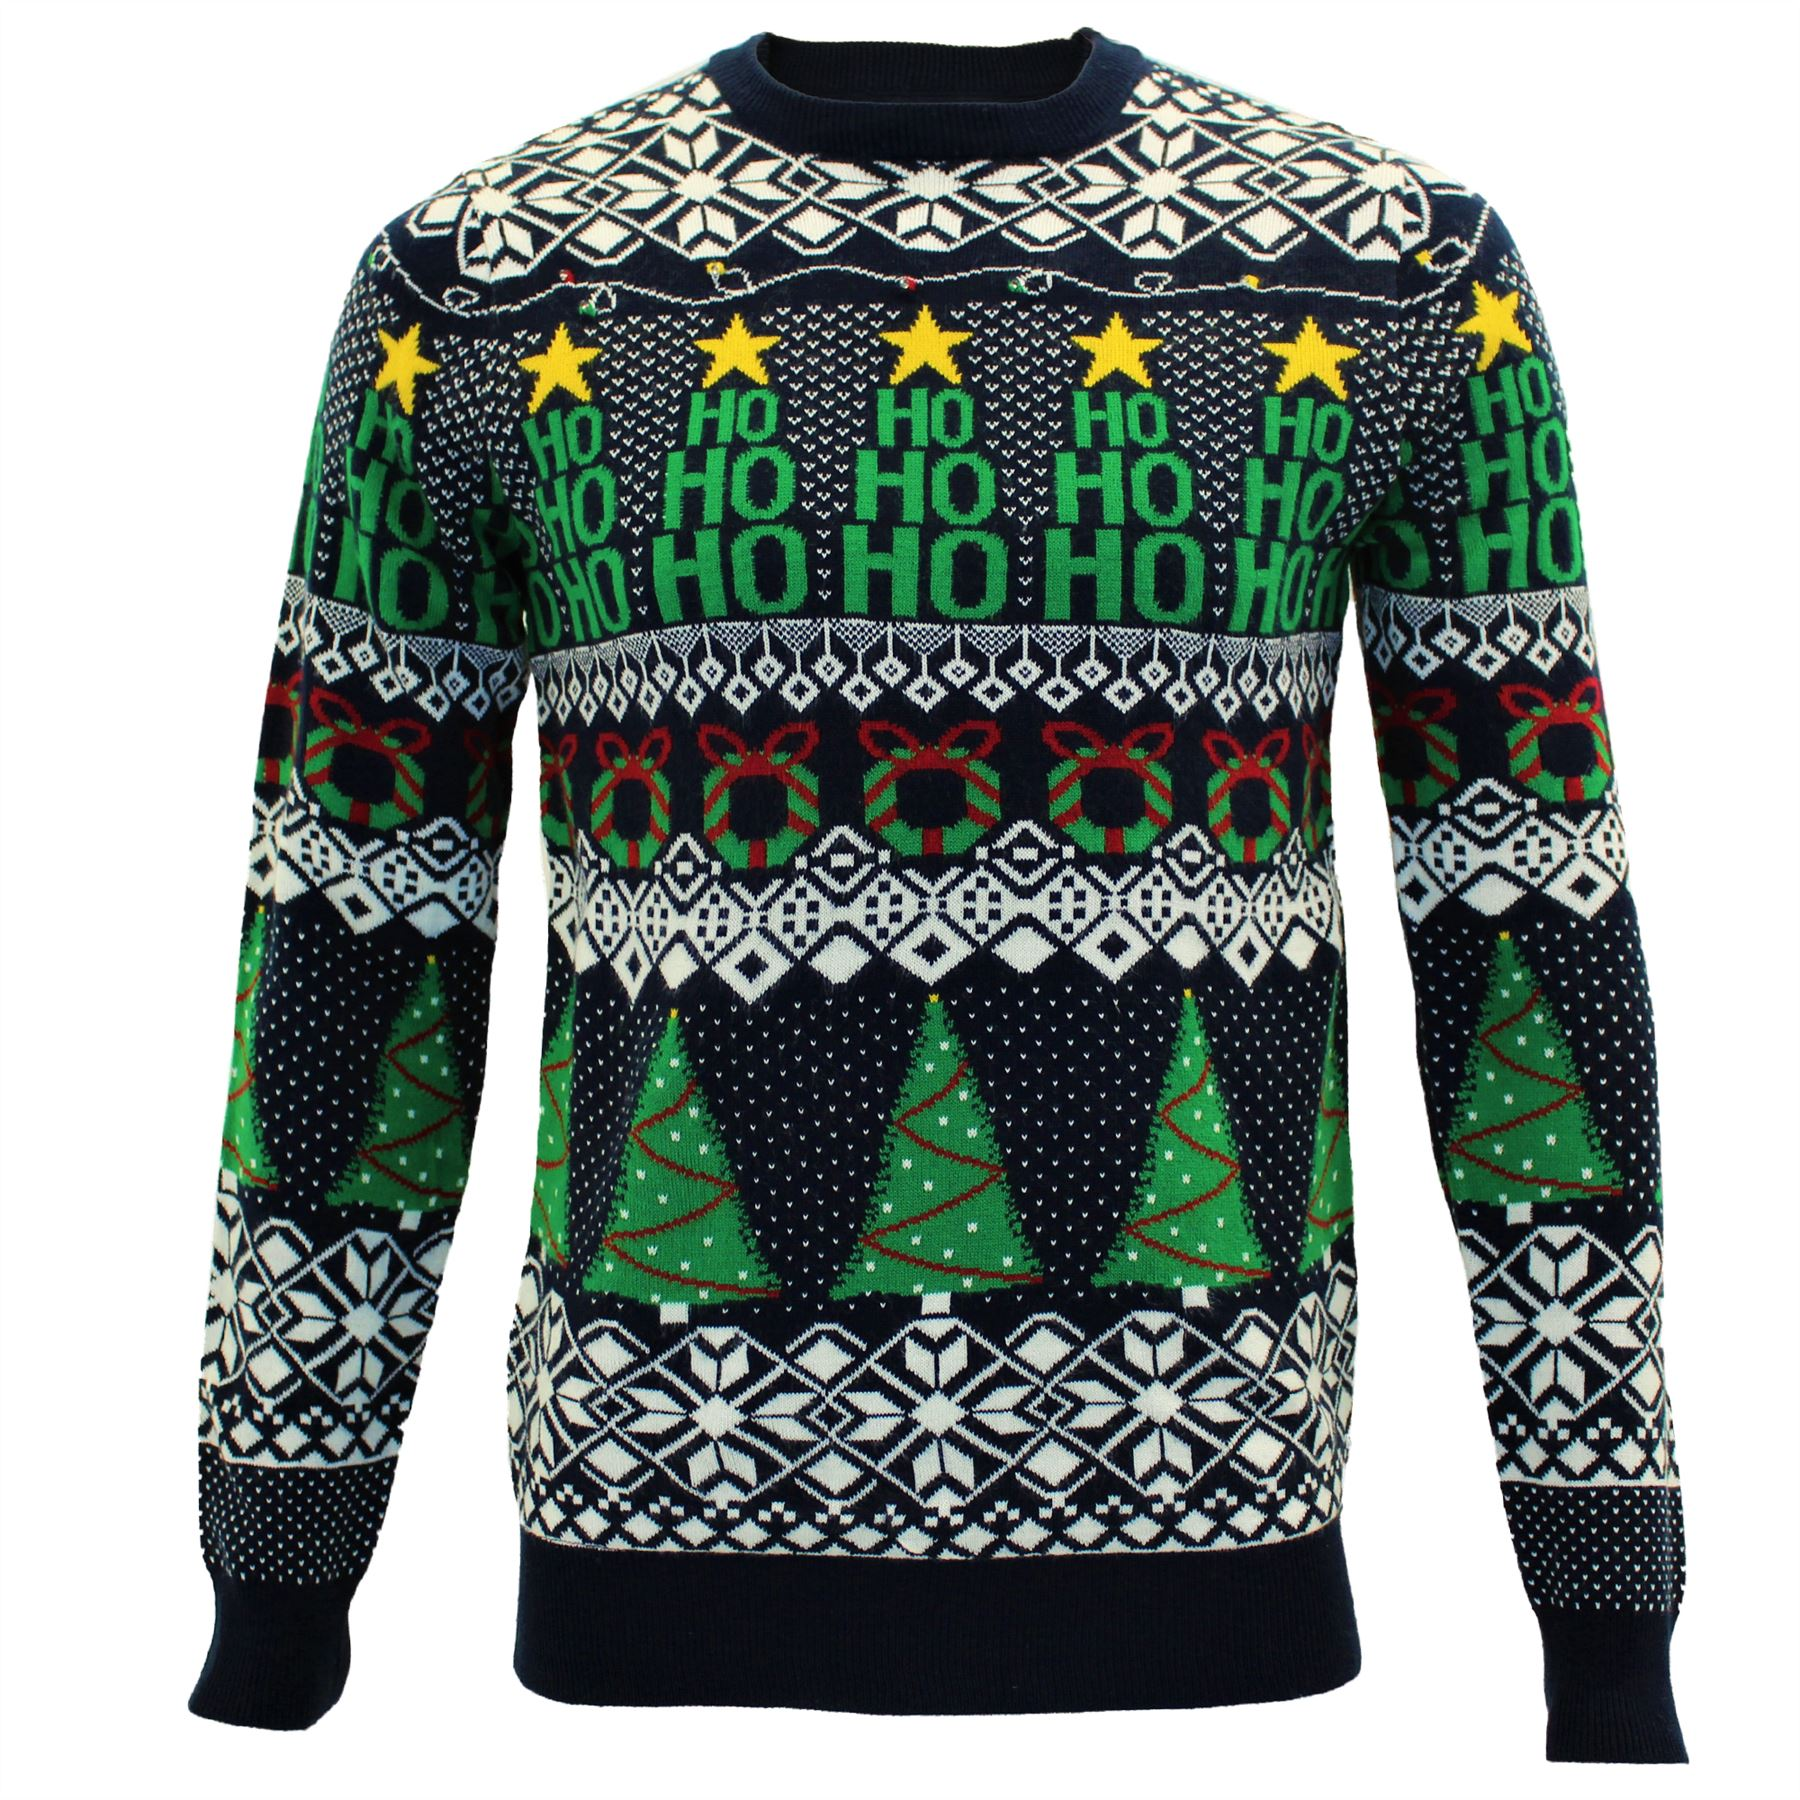 Mens Novelty Light Up Christmas Tree Pullover Jumper Sweater Top By Threadbare